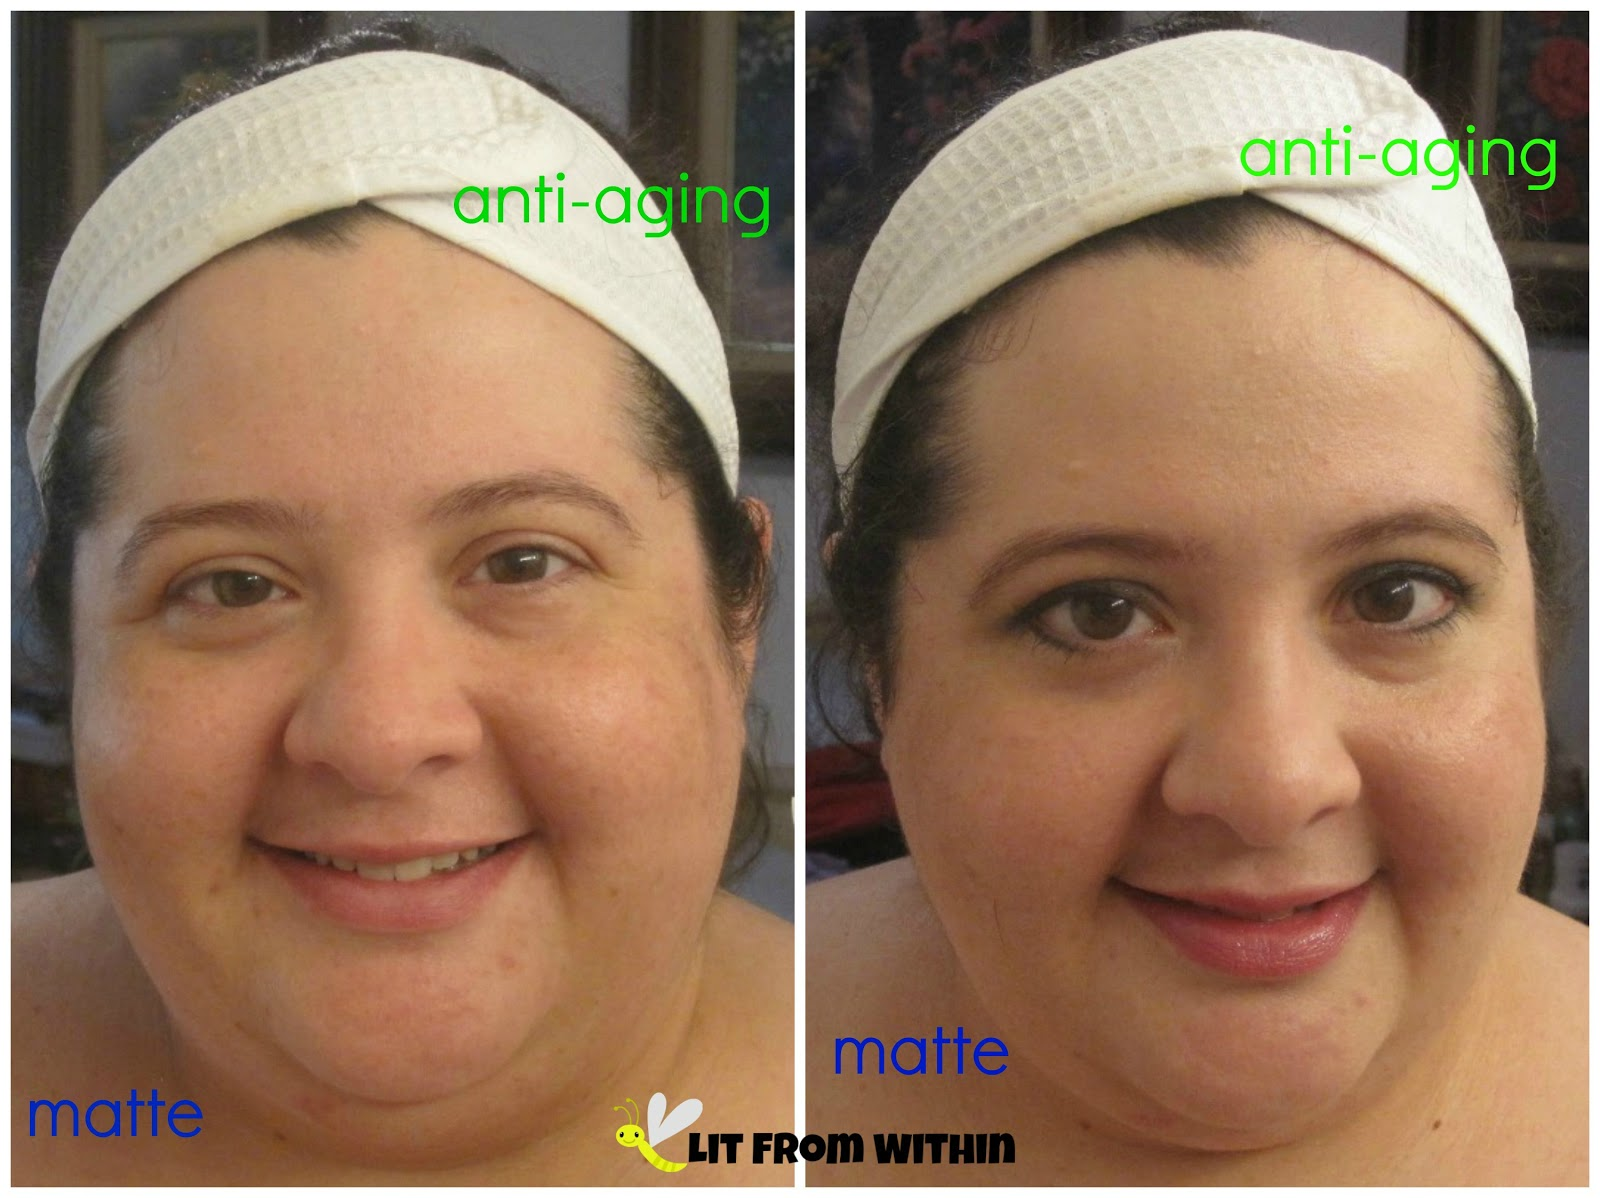 I put matte primer on half my face, and anti-aging on the other half.